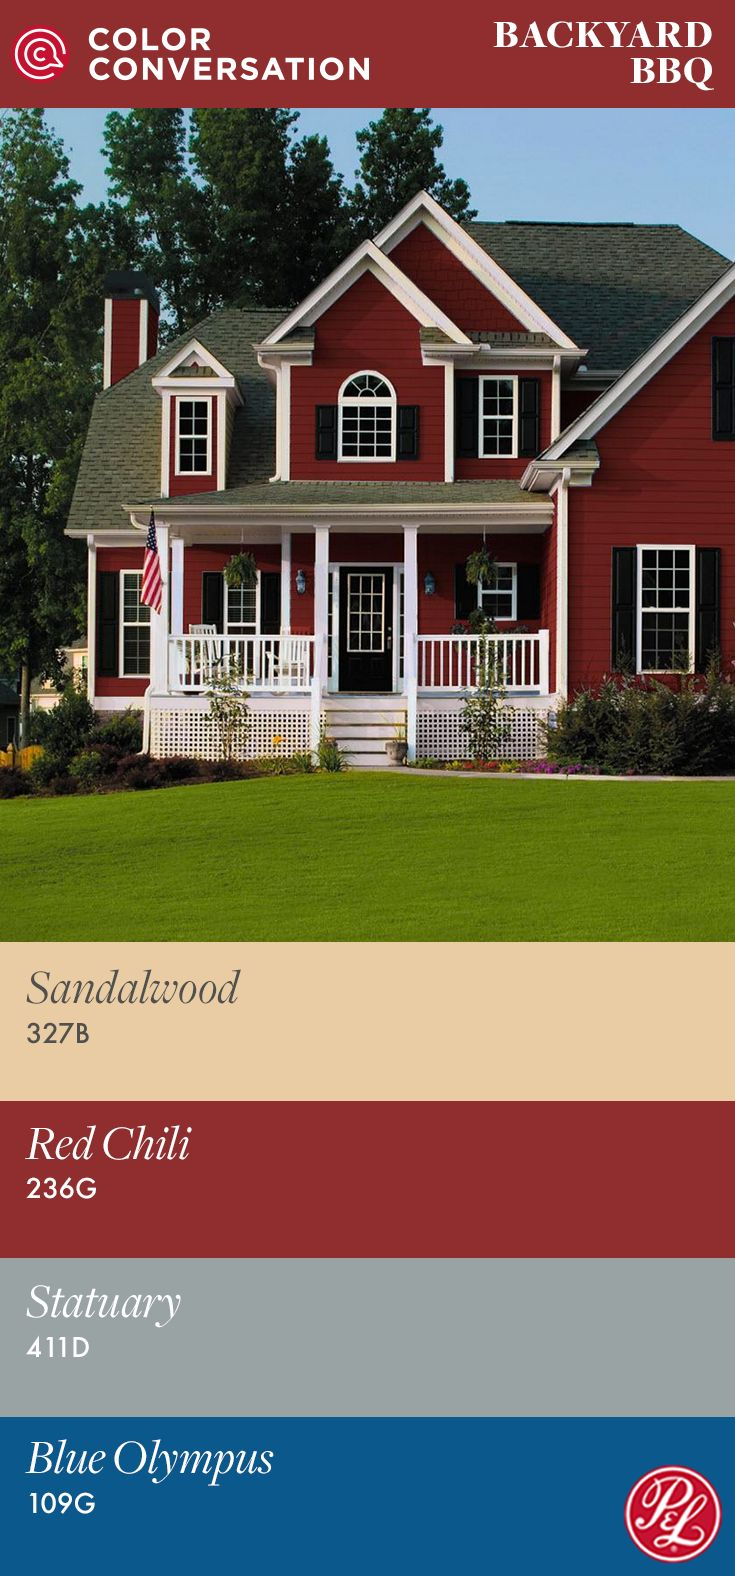 11 best color conversation endless summer images on Pratt and lambert red seal exterior